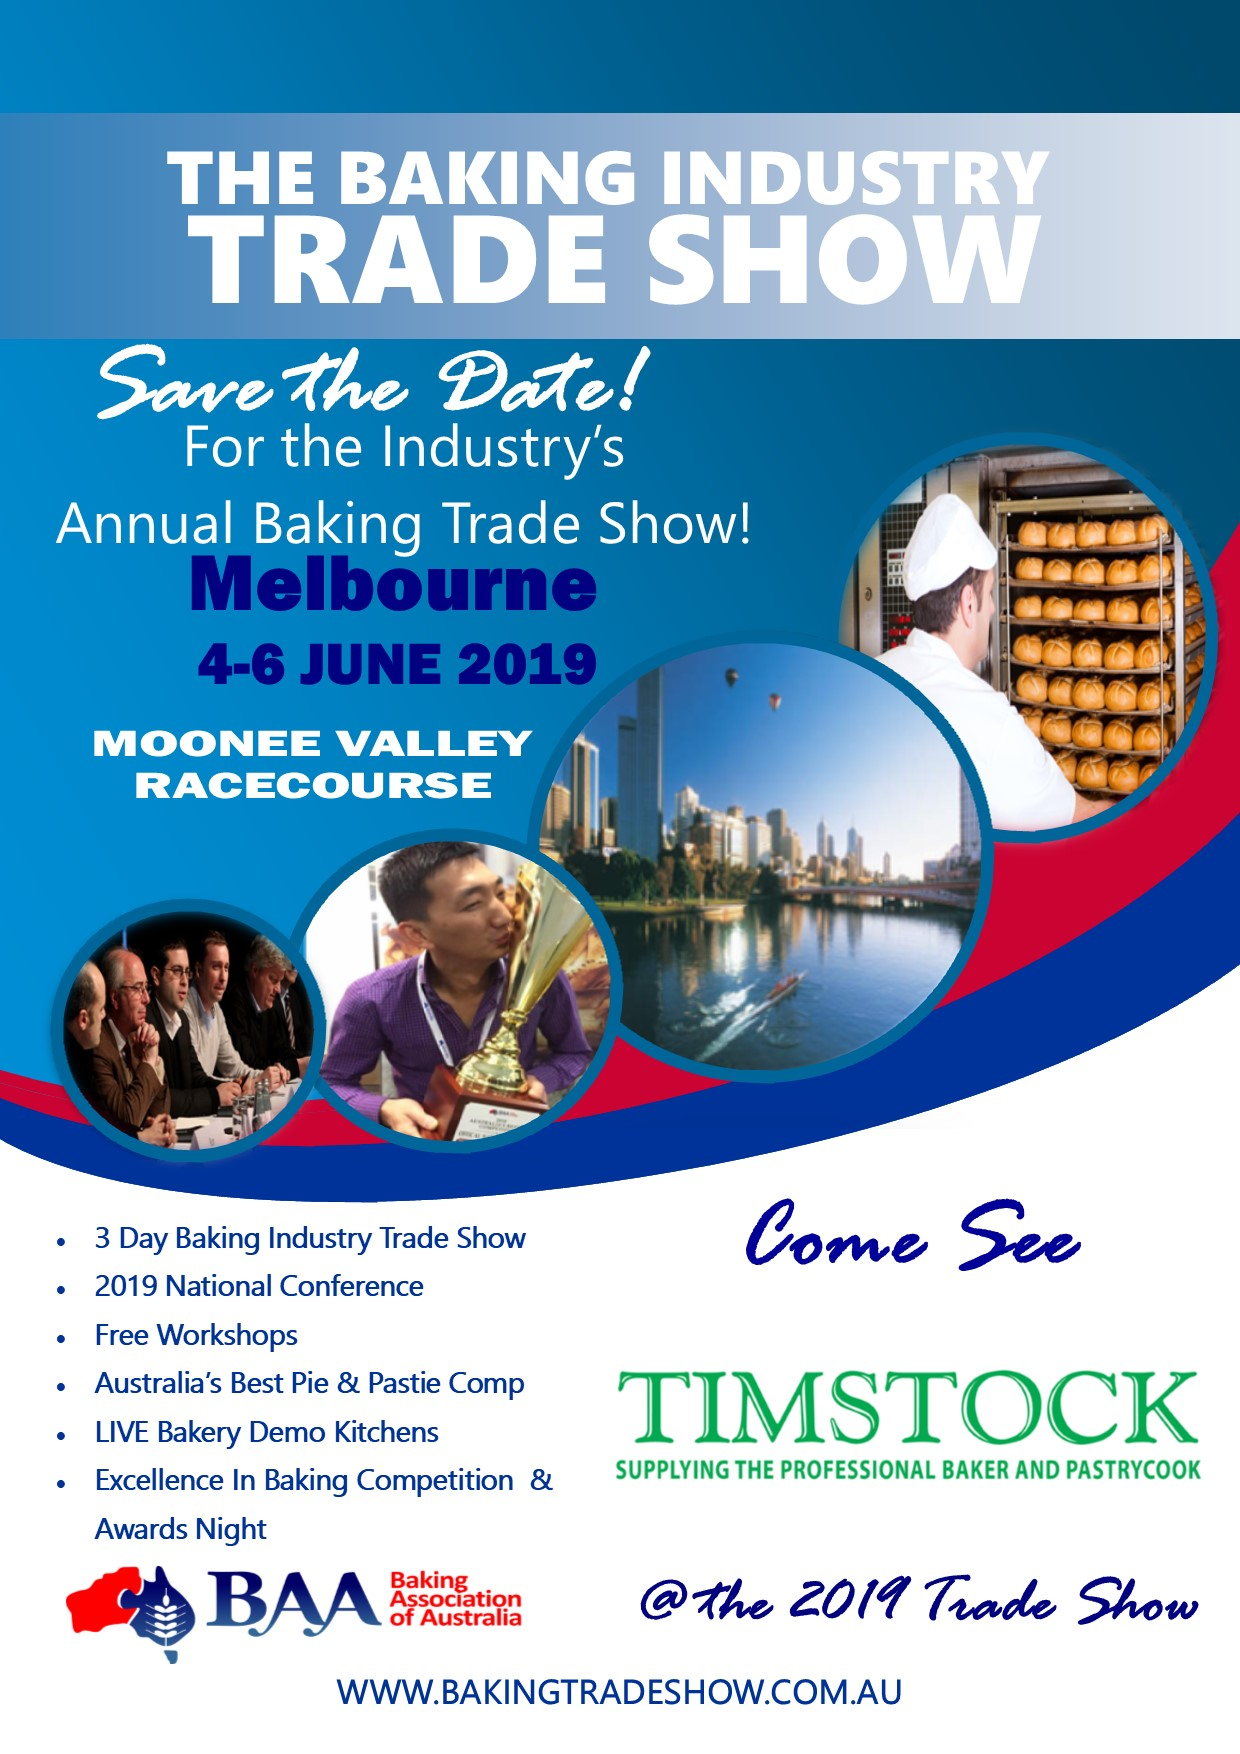 Baking Industry Trade Show 2019 - Timstock